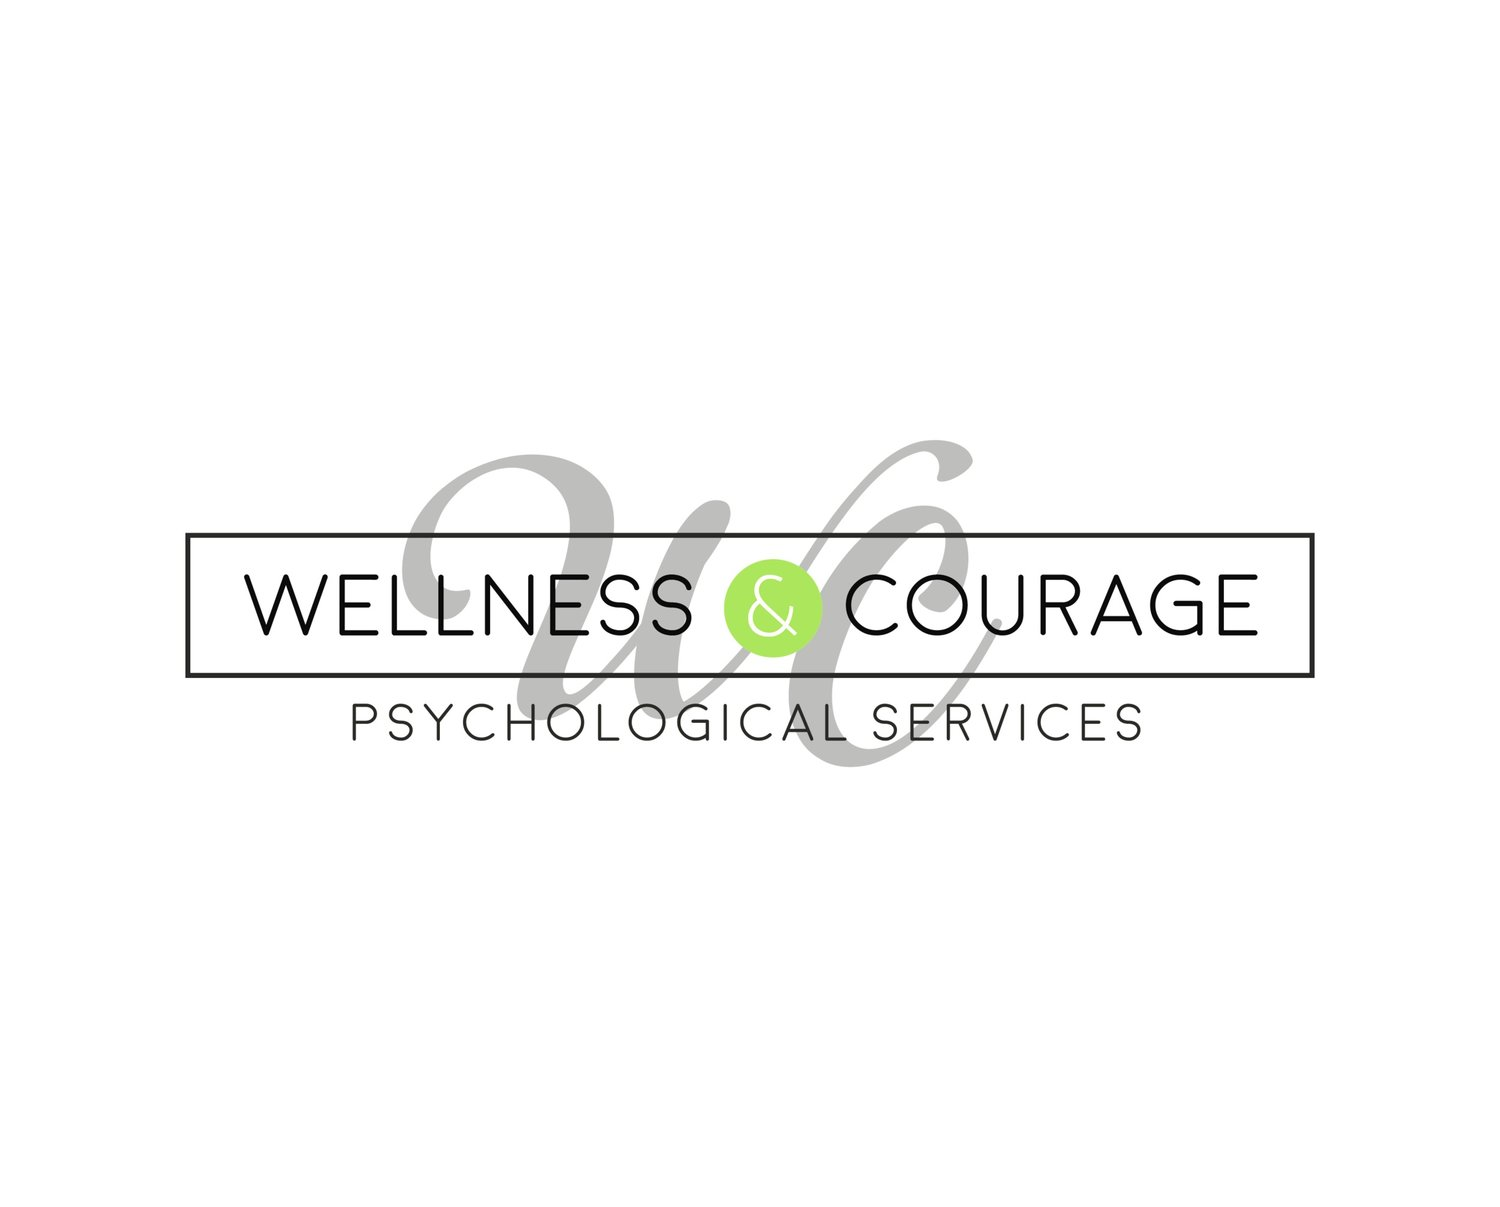 Wellness & Courage